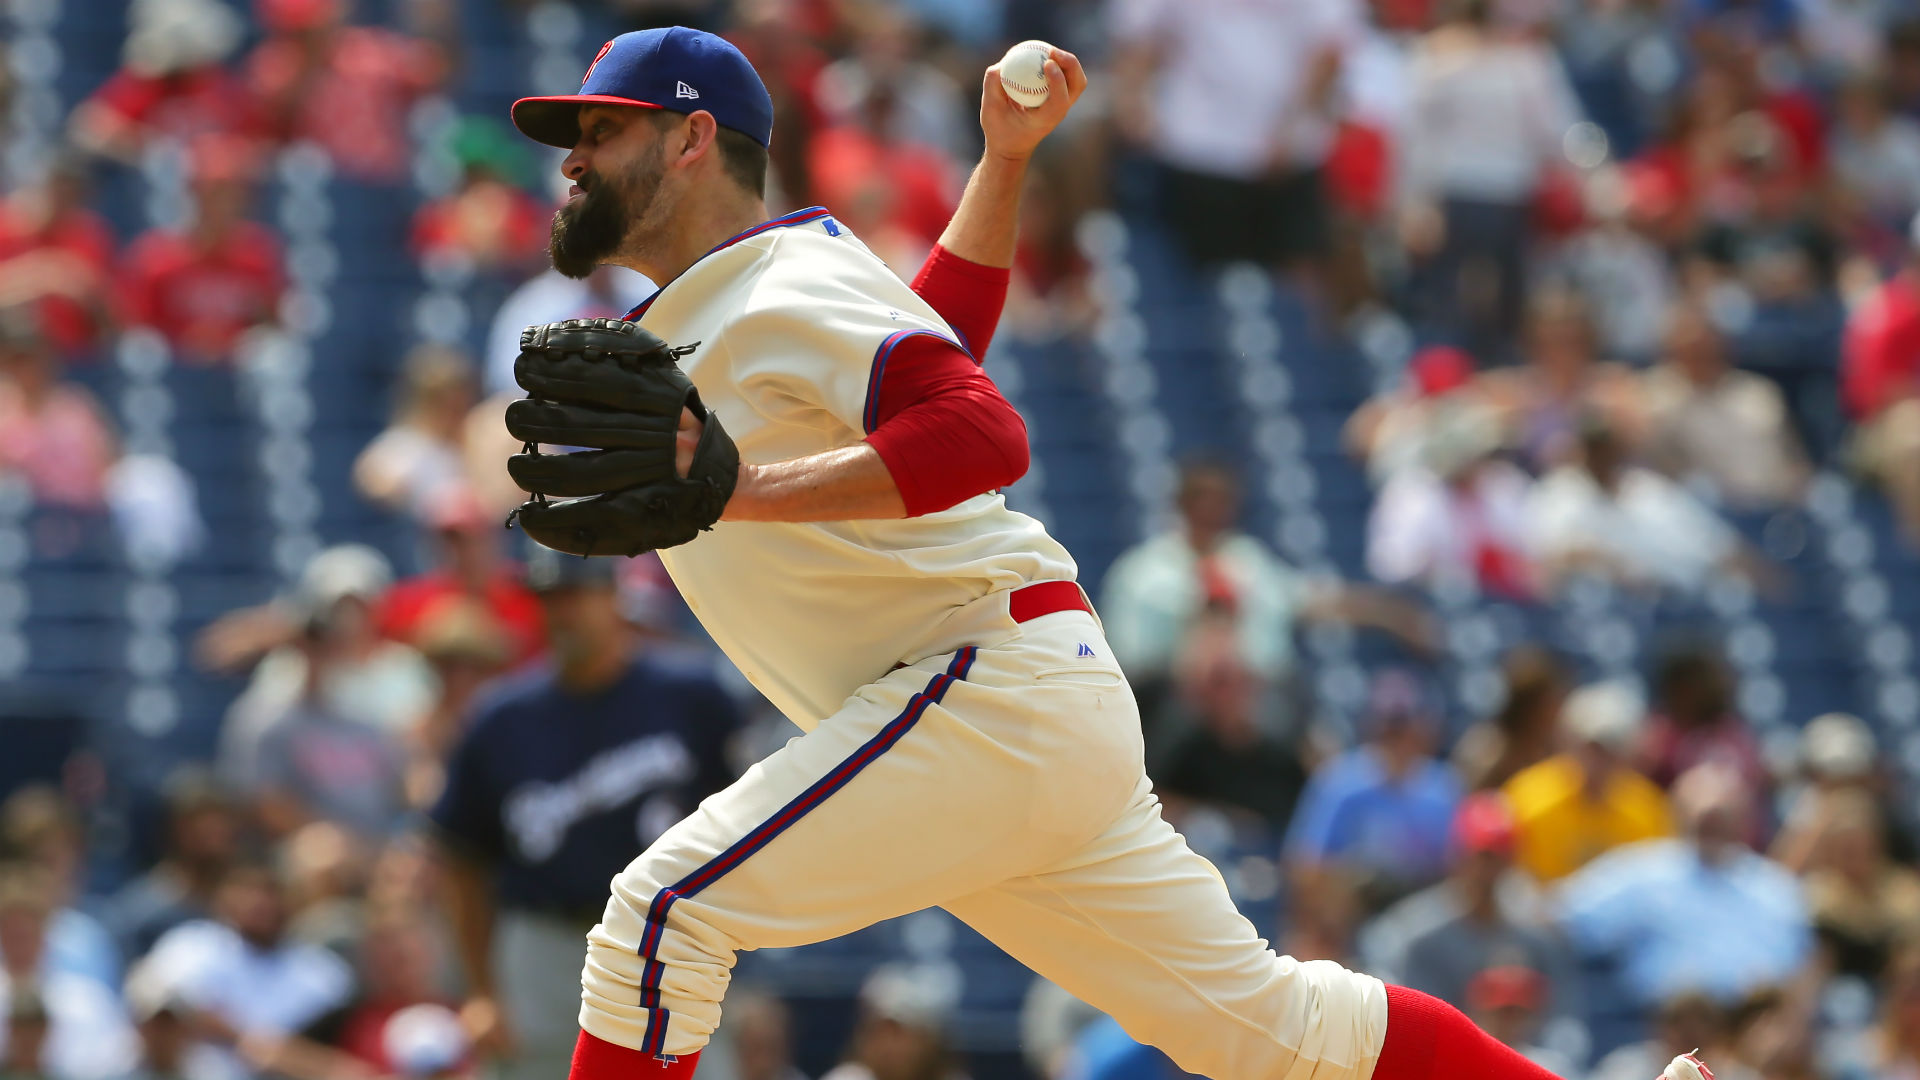 Philadelphia Phillies: Pat Neshek traded to Colorado Rockies